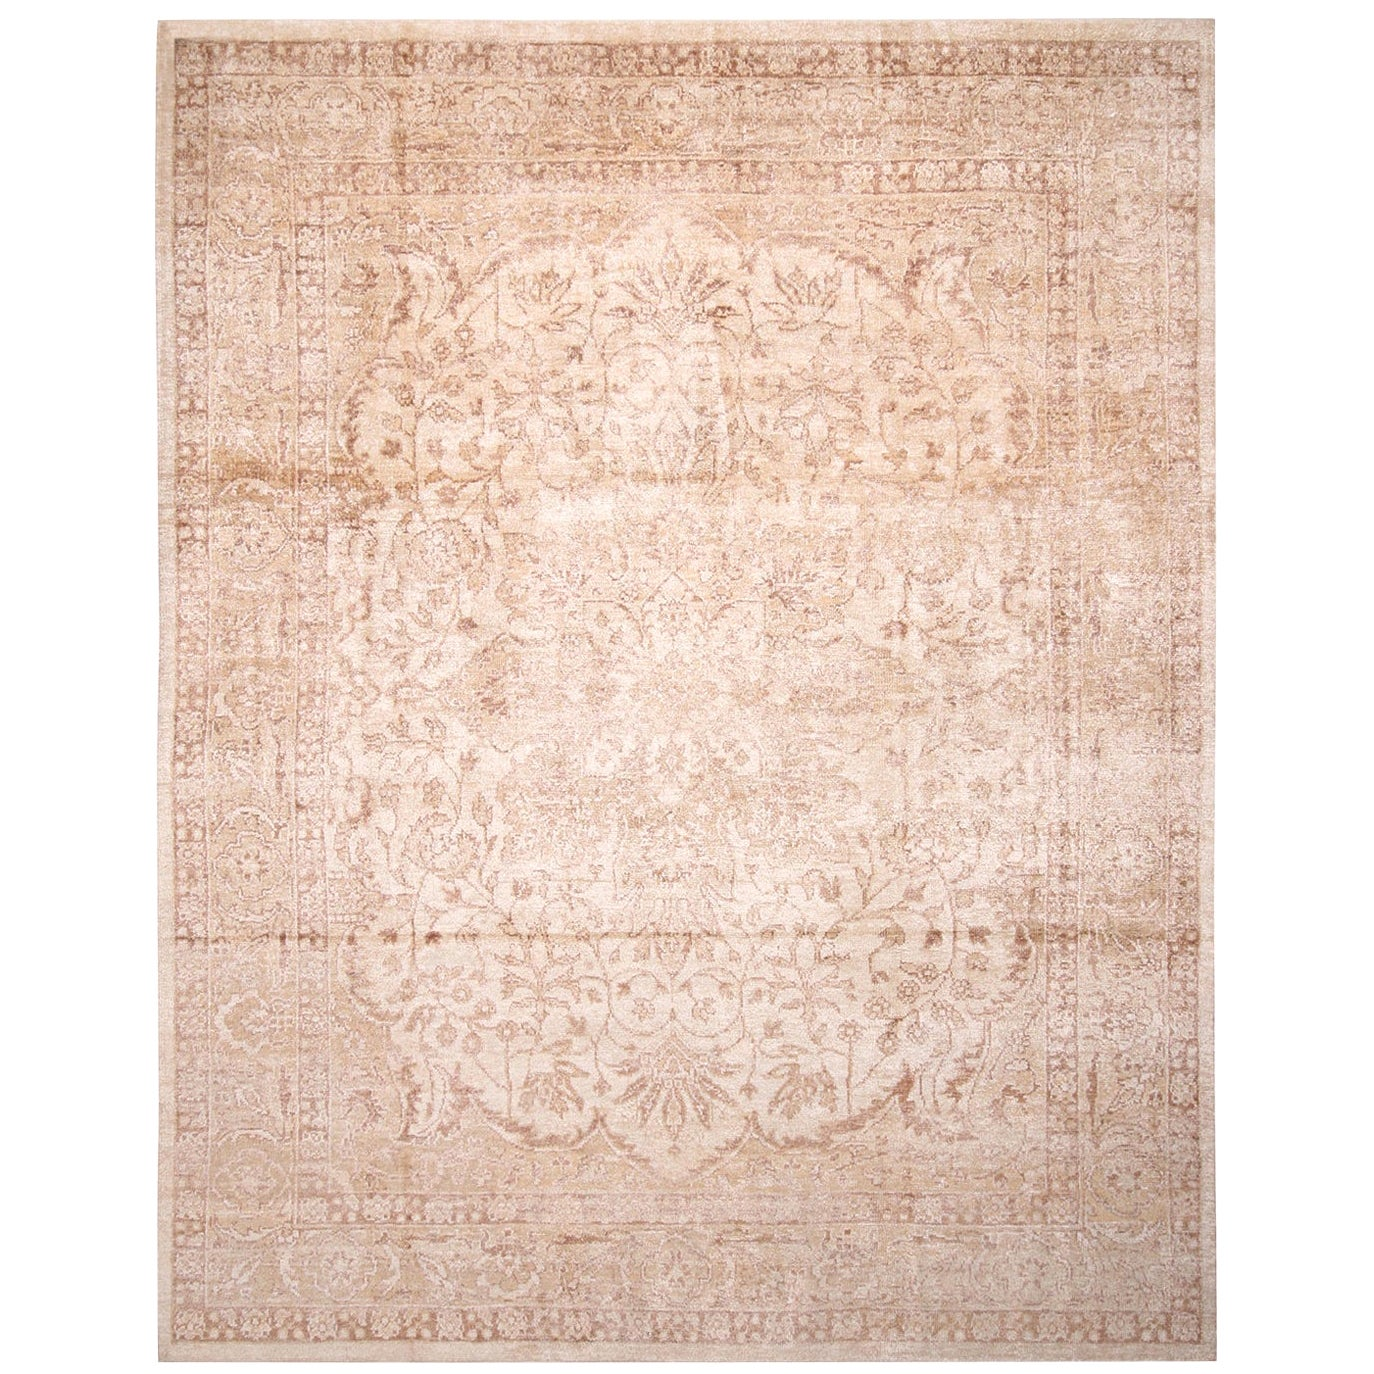 Contemporary Oushak Style Beige and Eggplant Brown Wool and Silk Rug